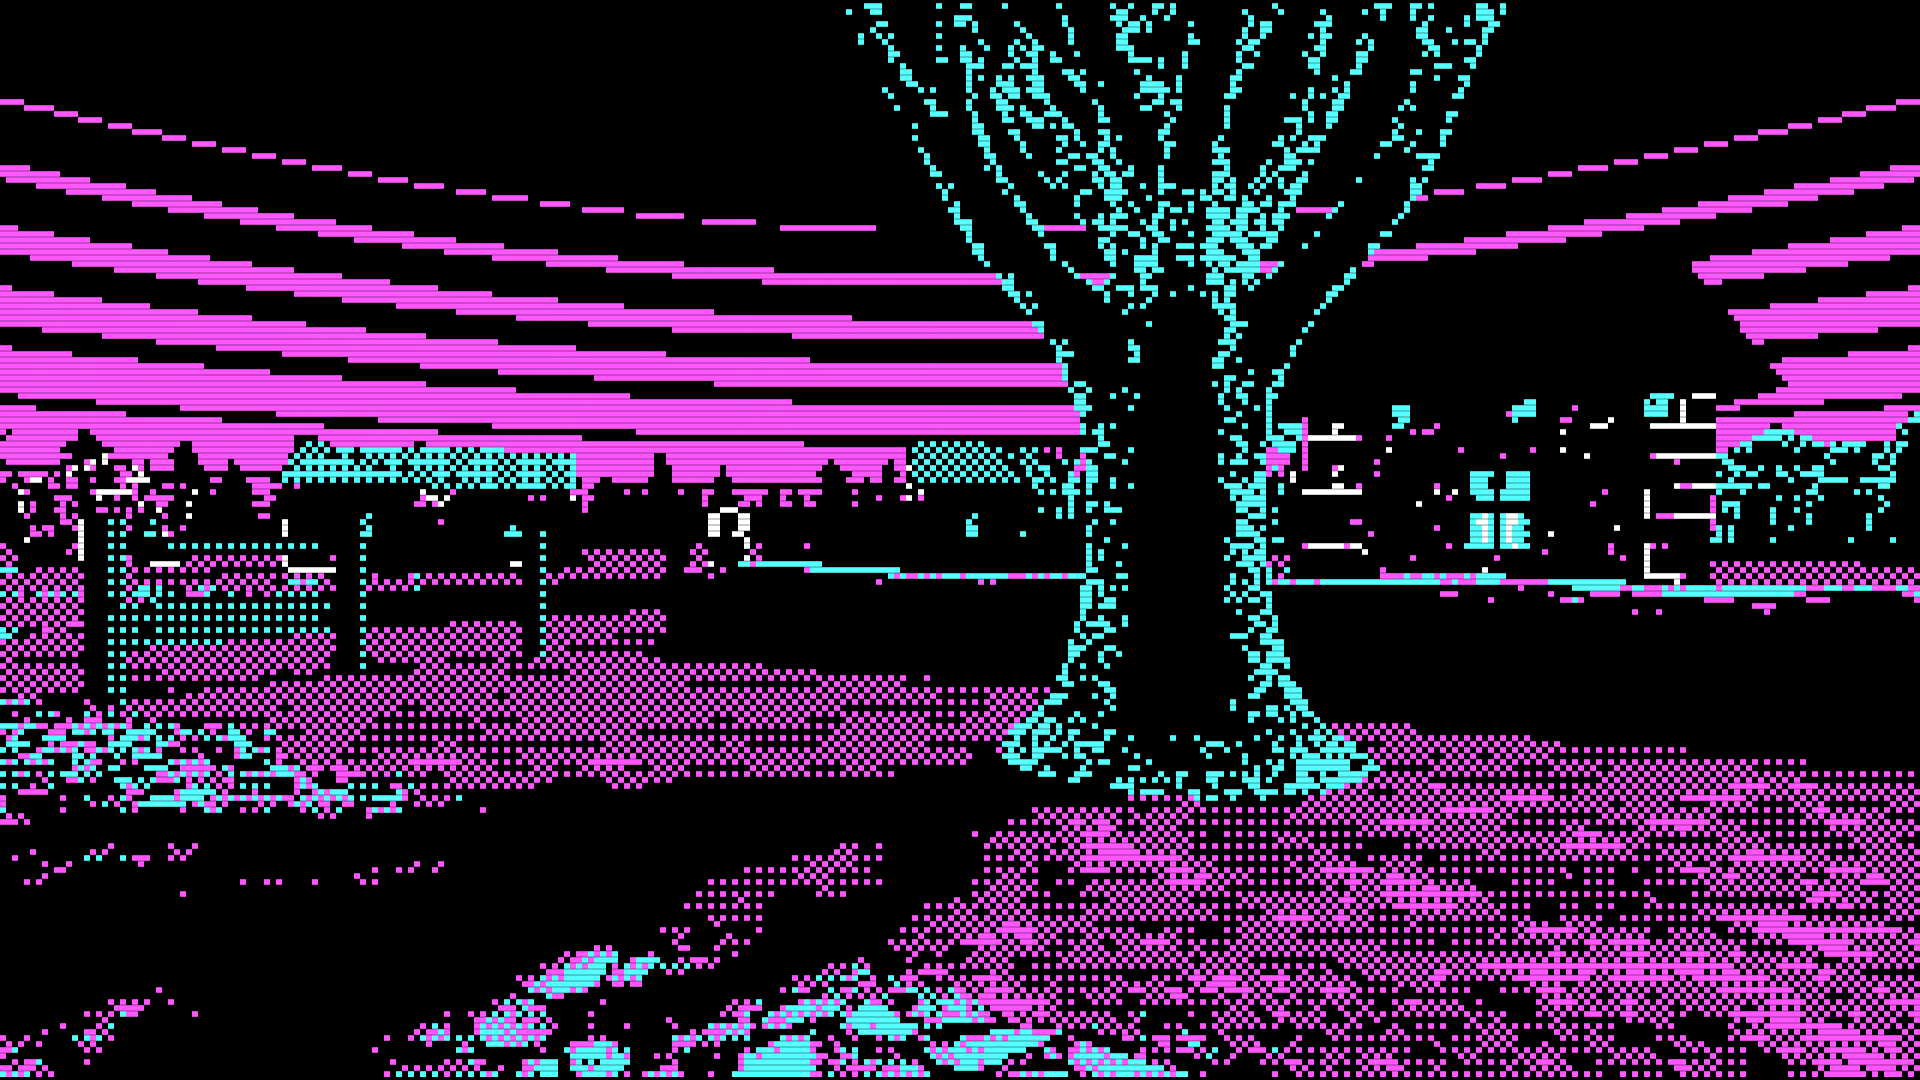 Video Game Aesthetic Wallpapers